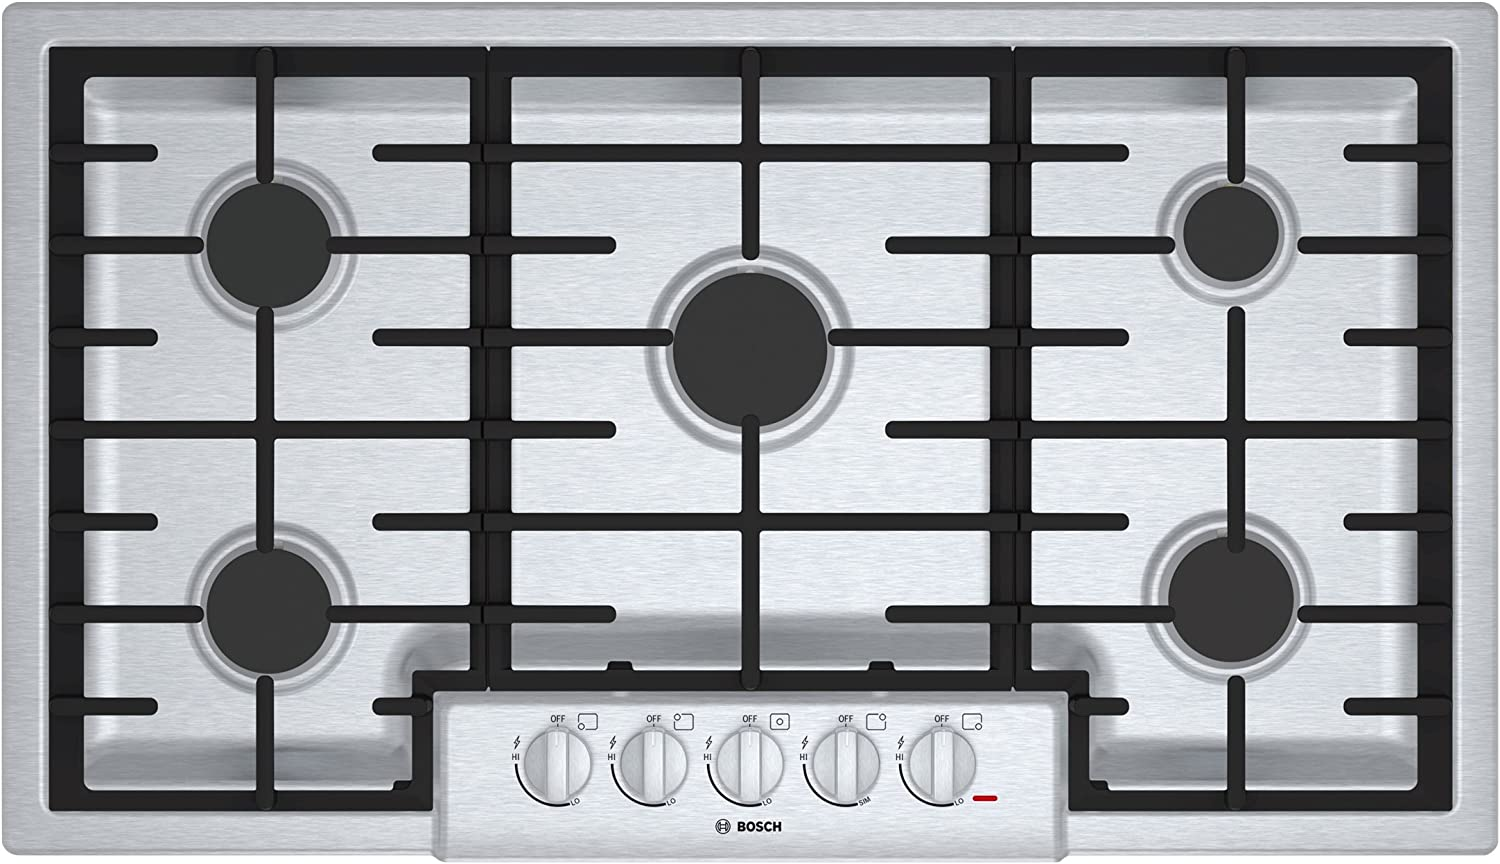 Bosch NGM8655UC 800 36 Stainless Steel Gas Sealed Burner Cooktop